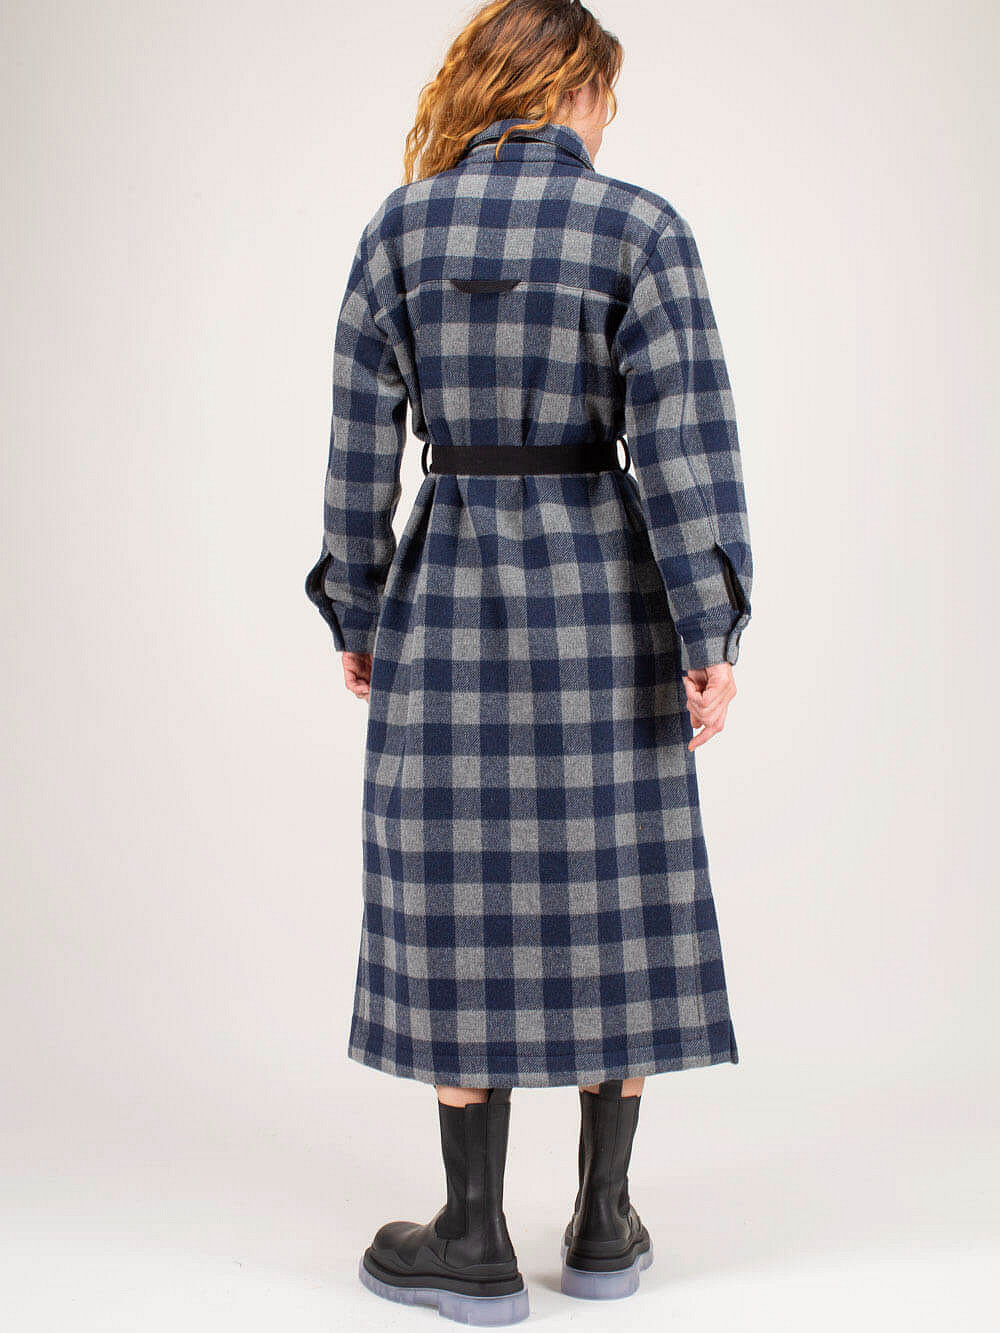 Sooth Stacey Hague dress blue